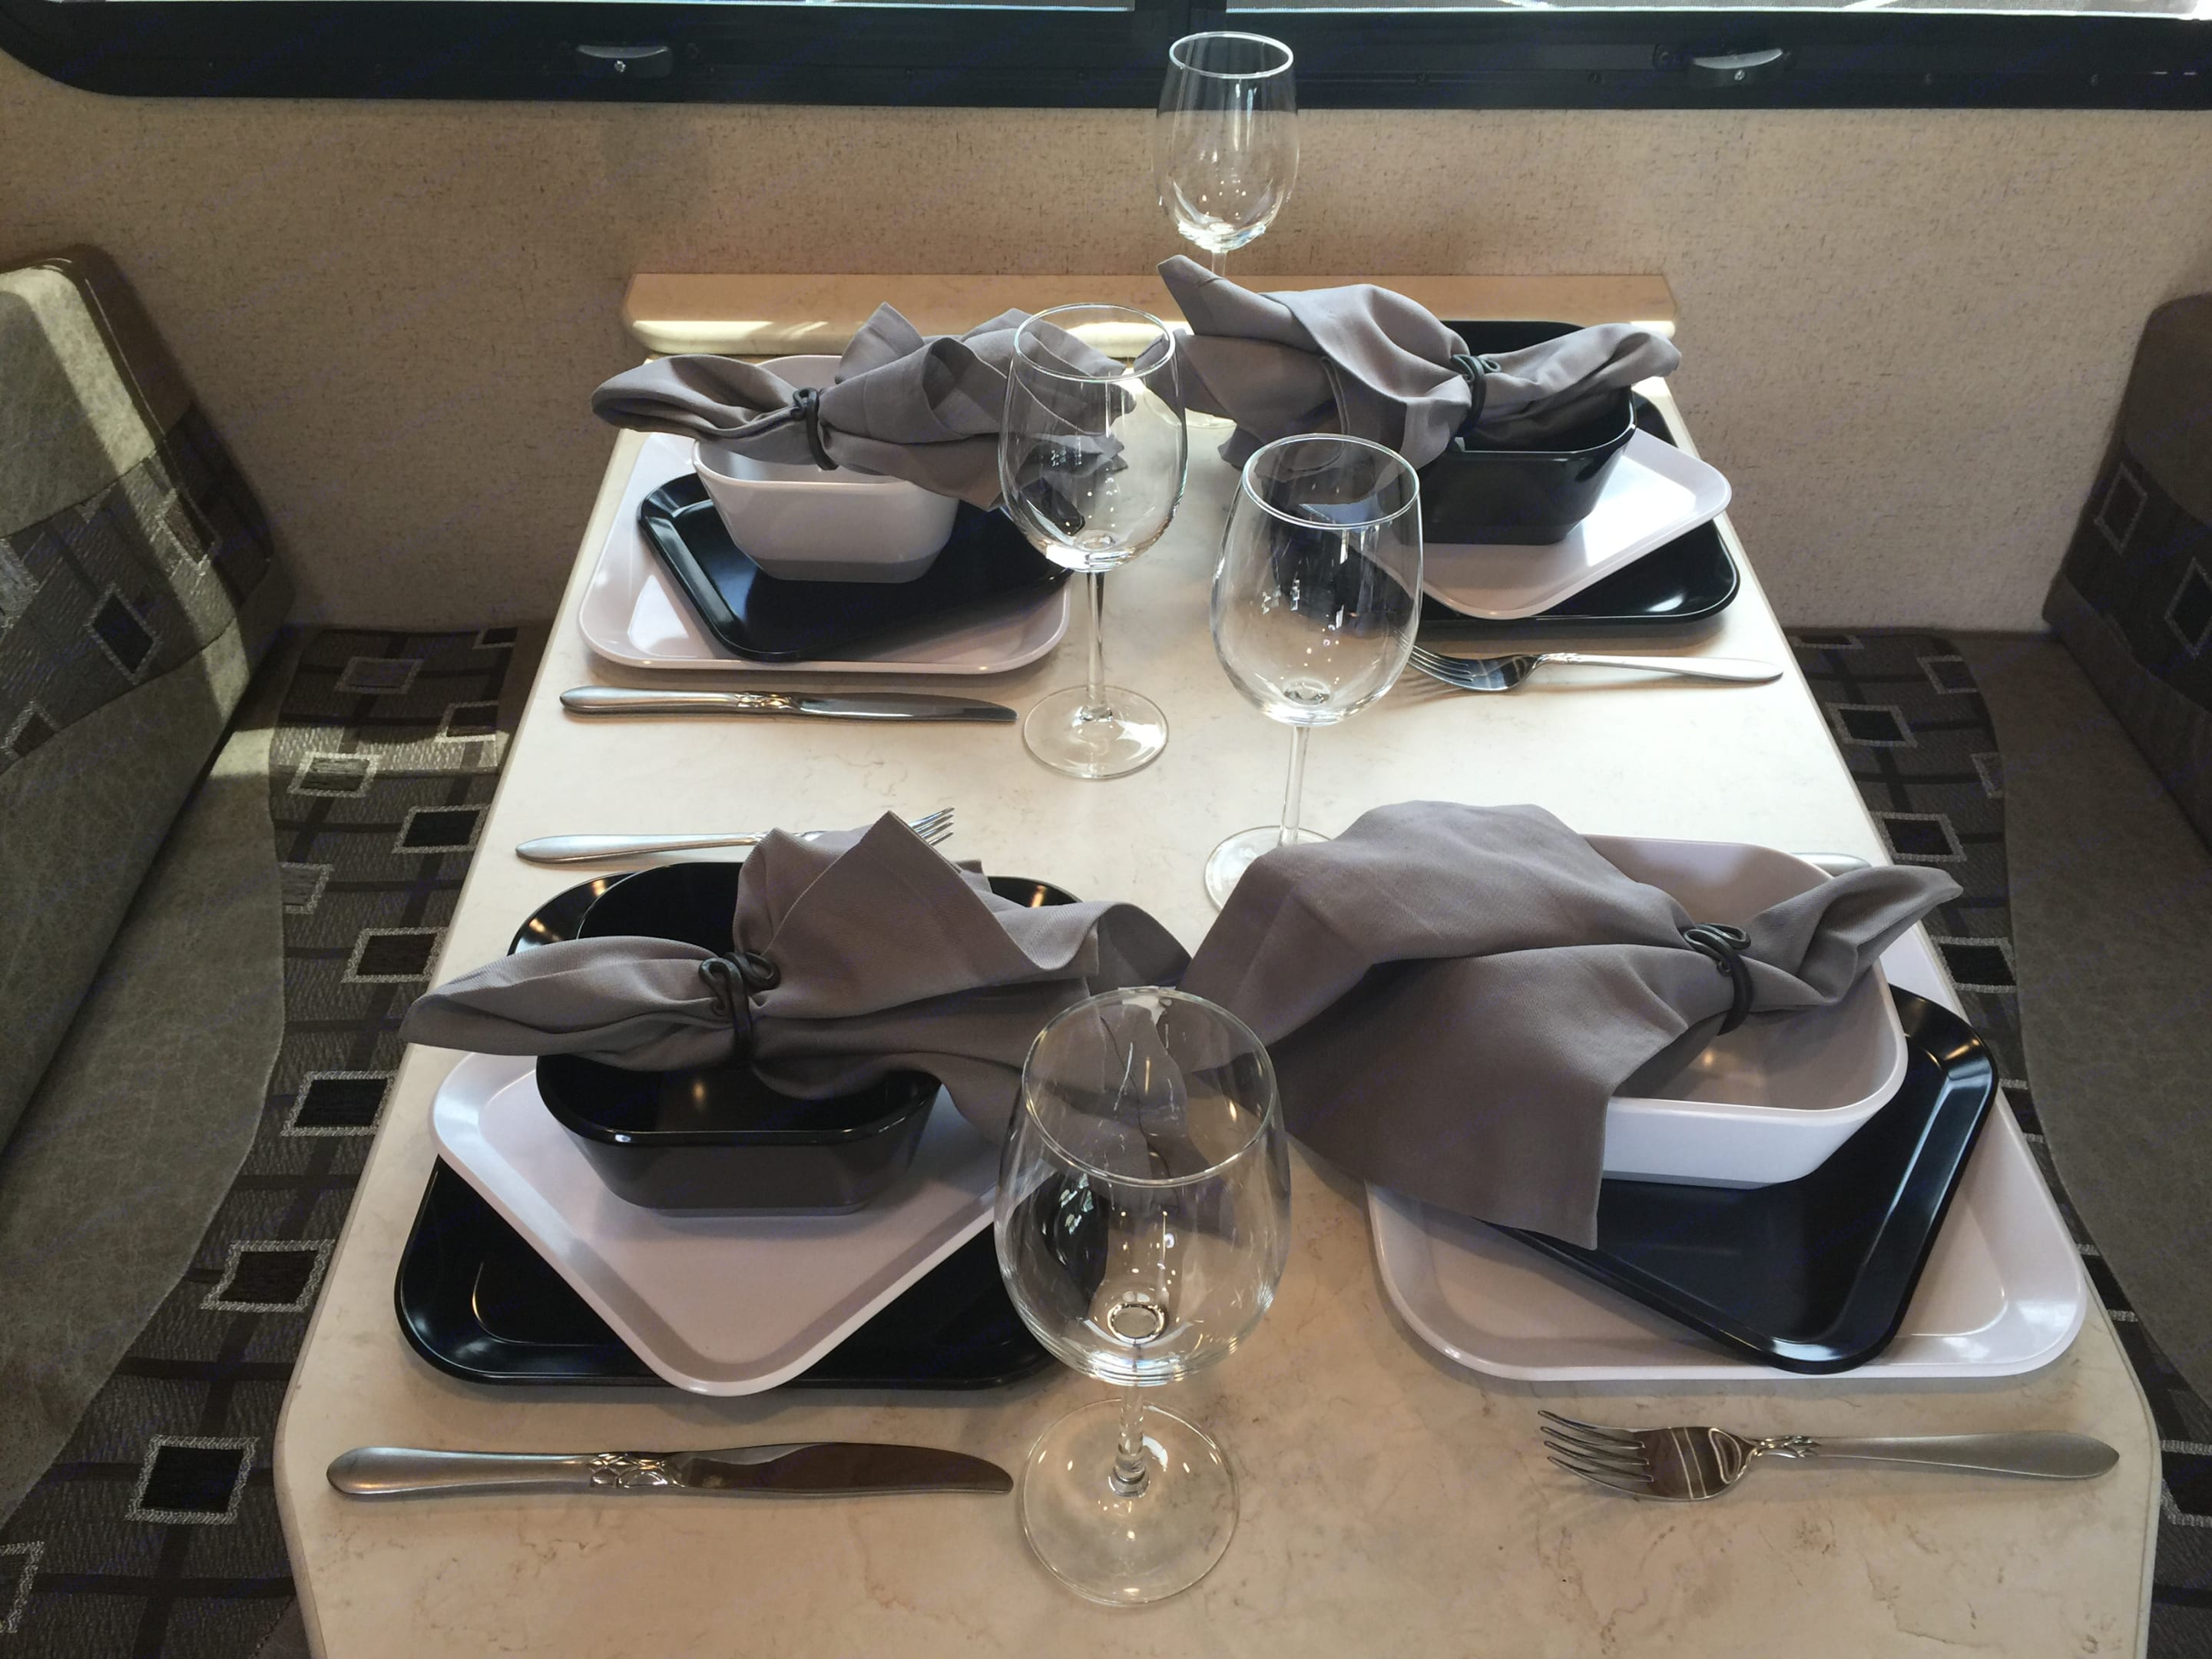 Table set for 4 - Perfect for a family or entertaining your guests. Jayco Melbourne 2017